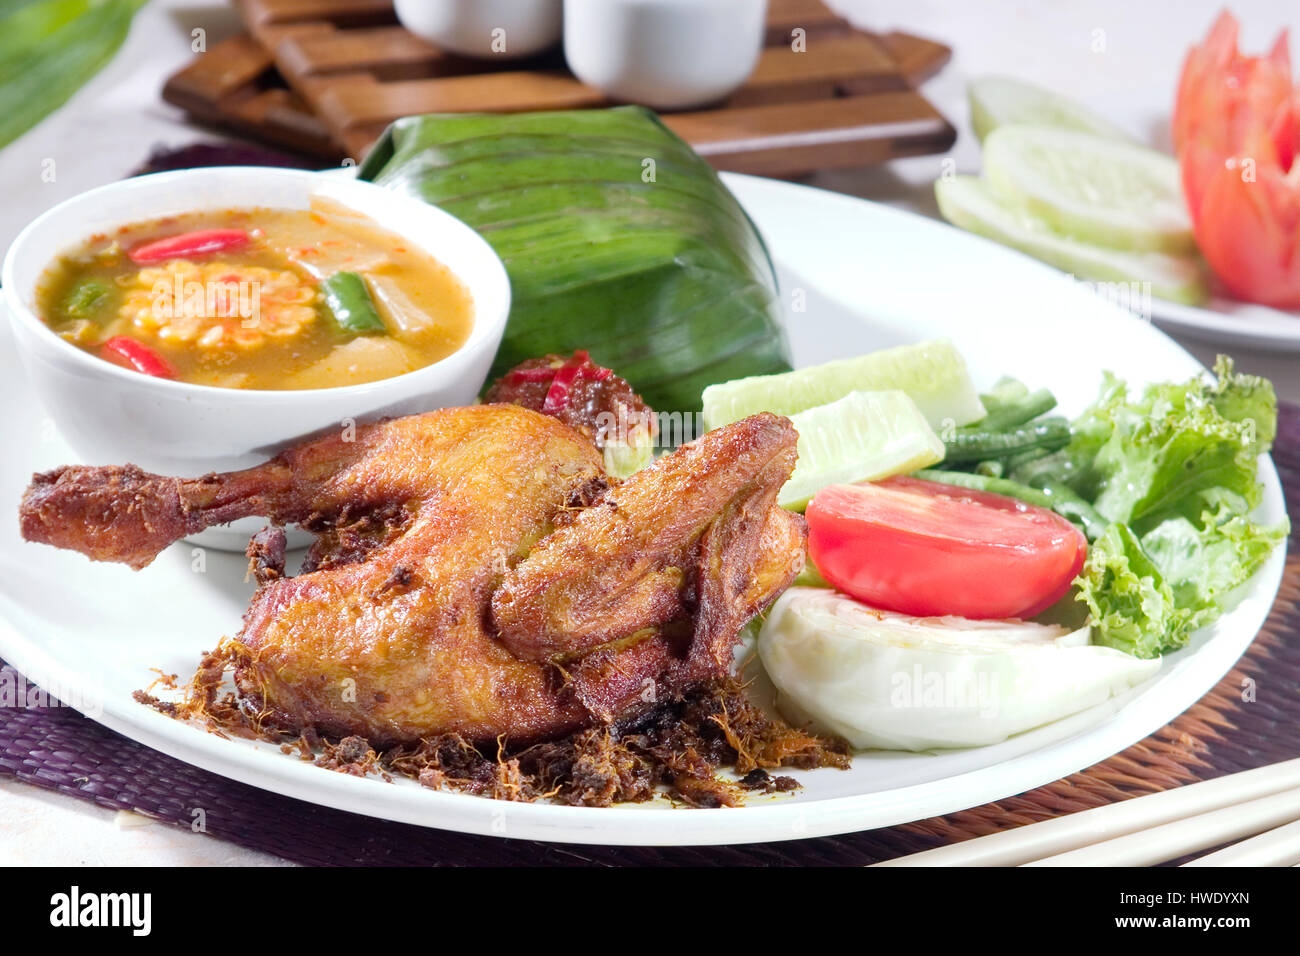 Ayam goreng Fried chicken Food Indonesia, serve with tamarind dish, sayur asam and rice - Stock Image